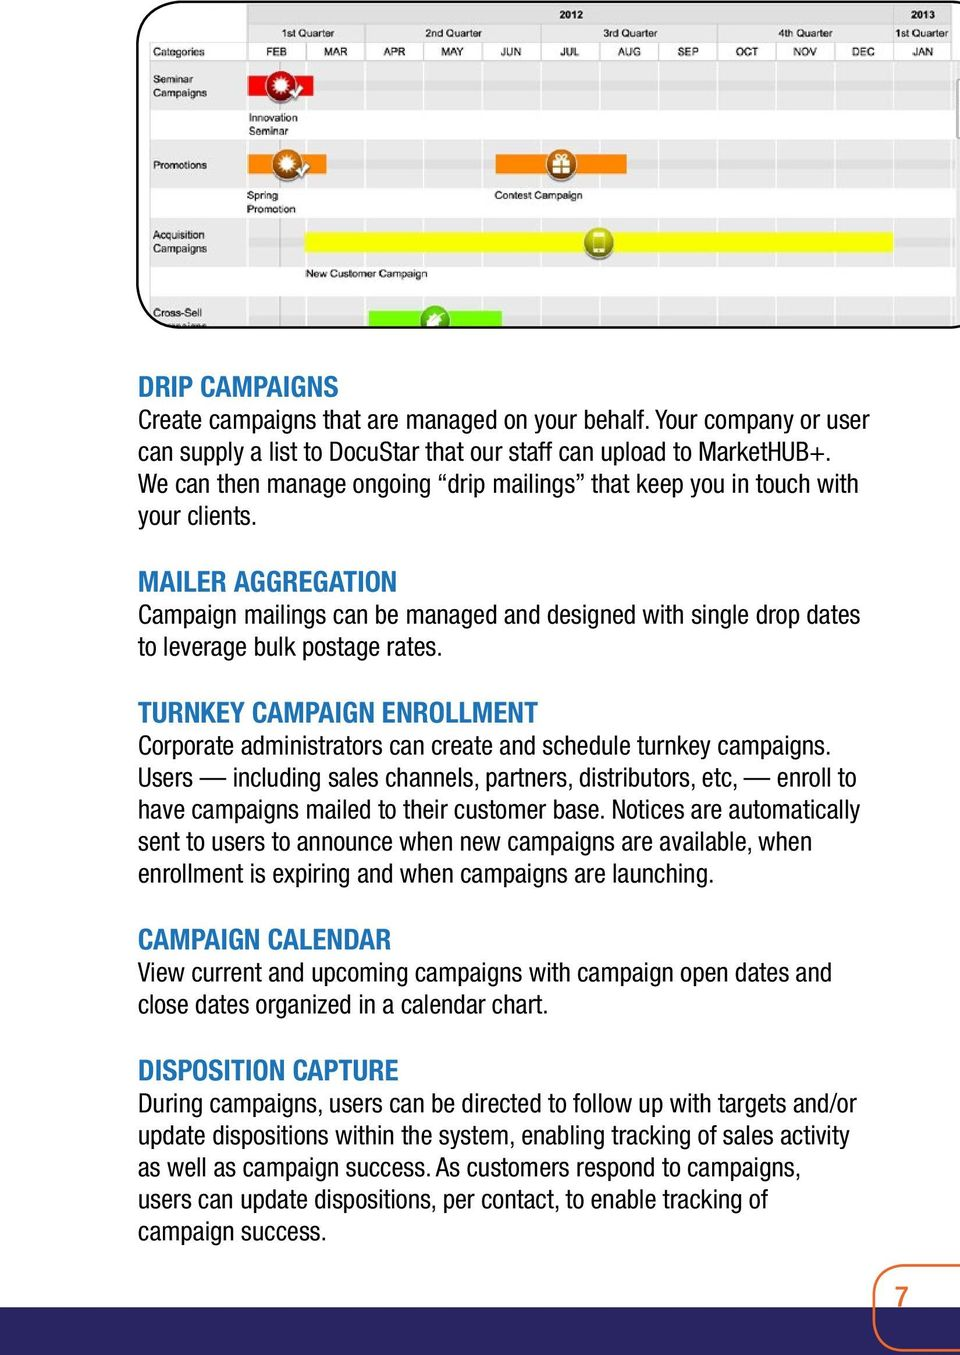 MAILER AGGREGATION Campaign mailings can be managed and designed with single drop dates to leverage bulk postage rates.